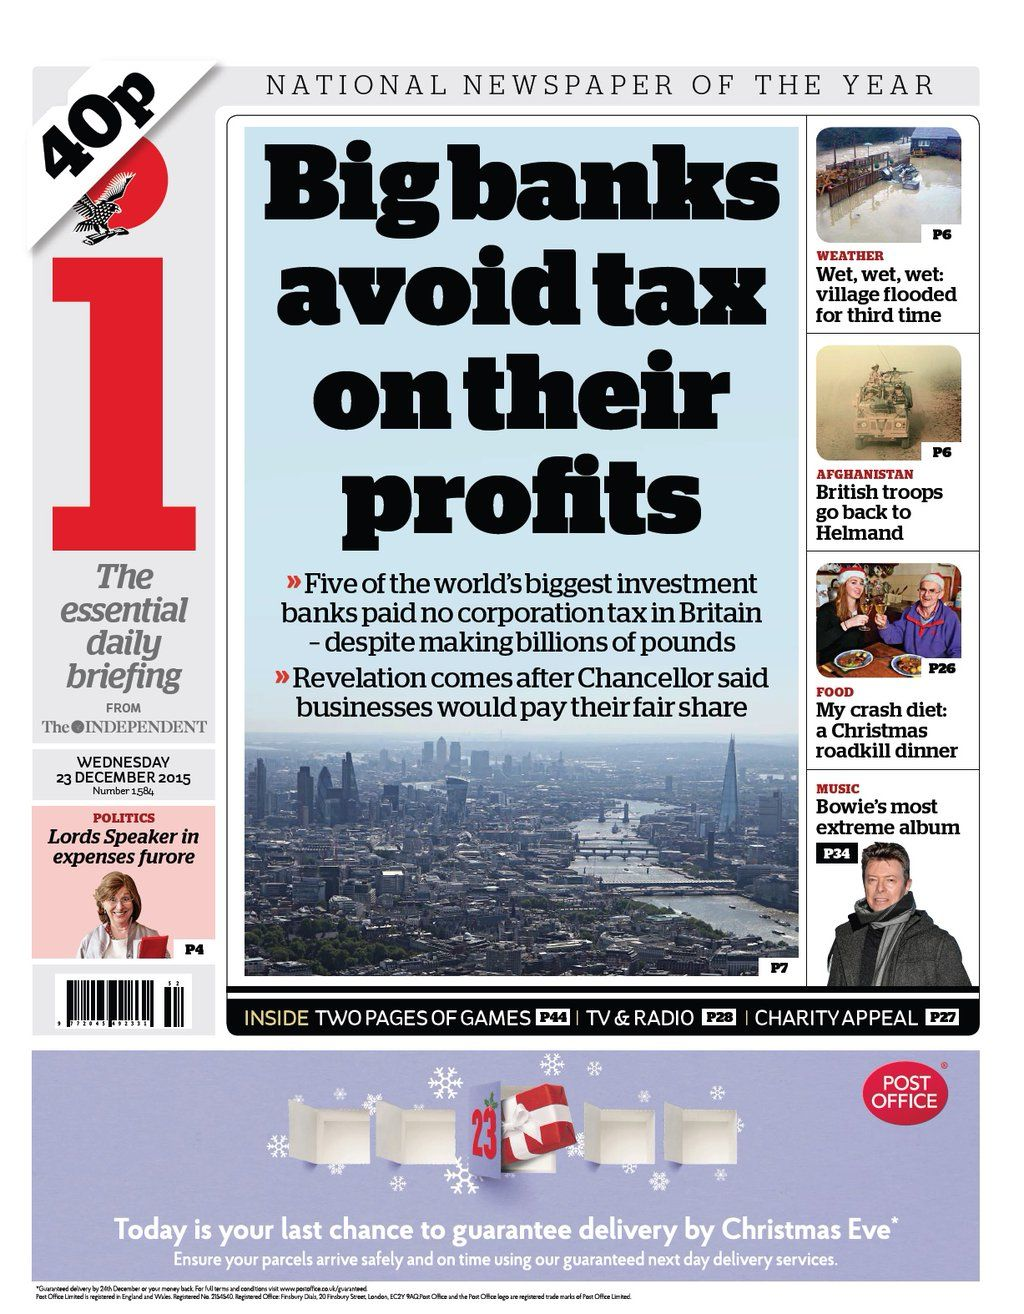 Wednesday's i front page: Big banks avoid tax on their profits #tomorrowspaperstoday #bbcpapers https://t.co/5ozC8Cce54